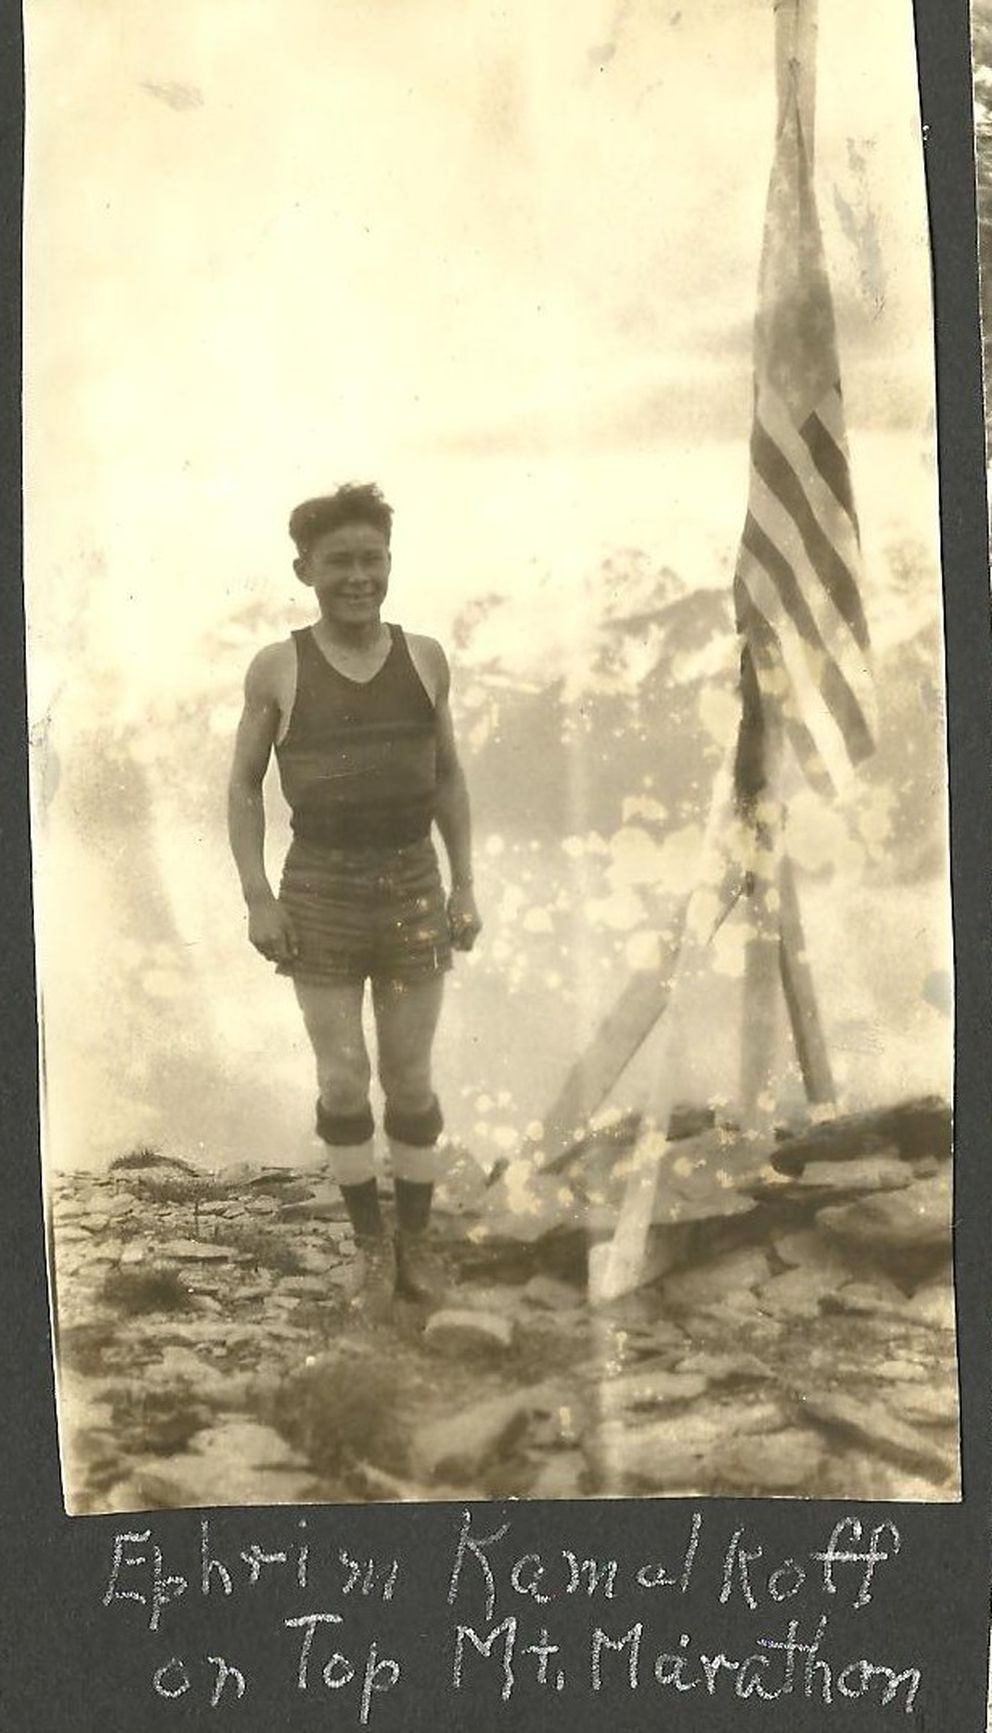 Ephraim Kalmakoff at Race Point on Mount Marathon, circa 1930. The photo is from the scrapbook of Edith Neese, a teacher at Seward's Jesse Lee Home from 1930-34. (Doug Capra collection)